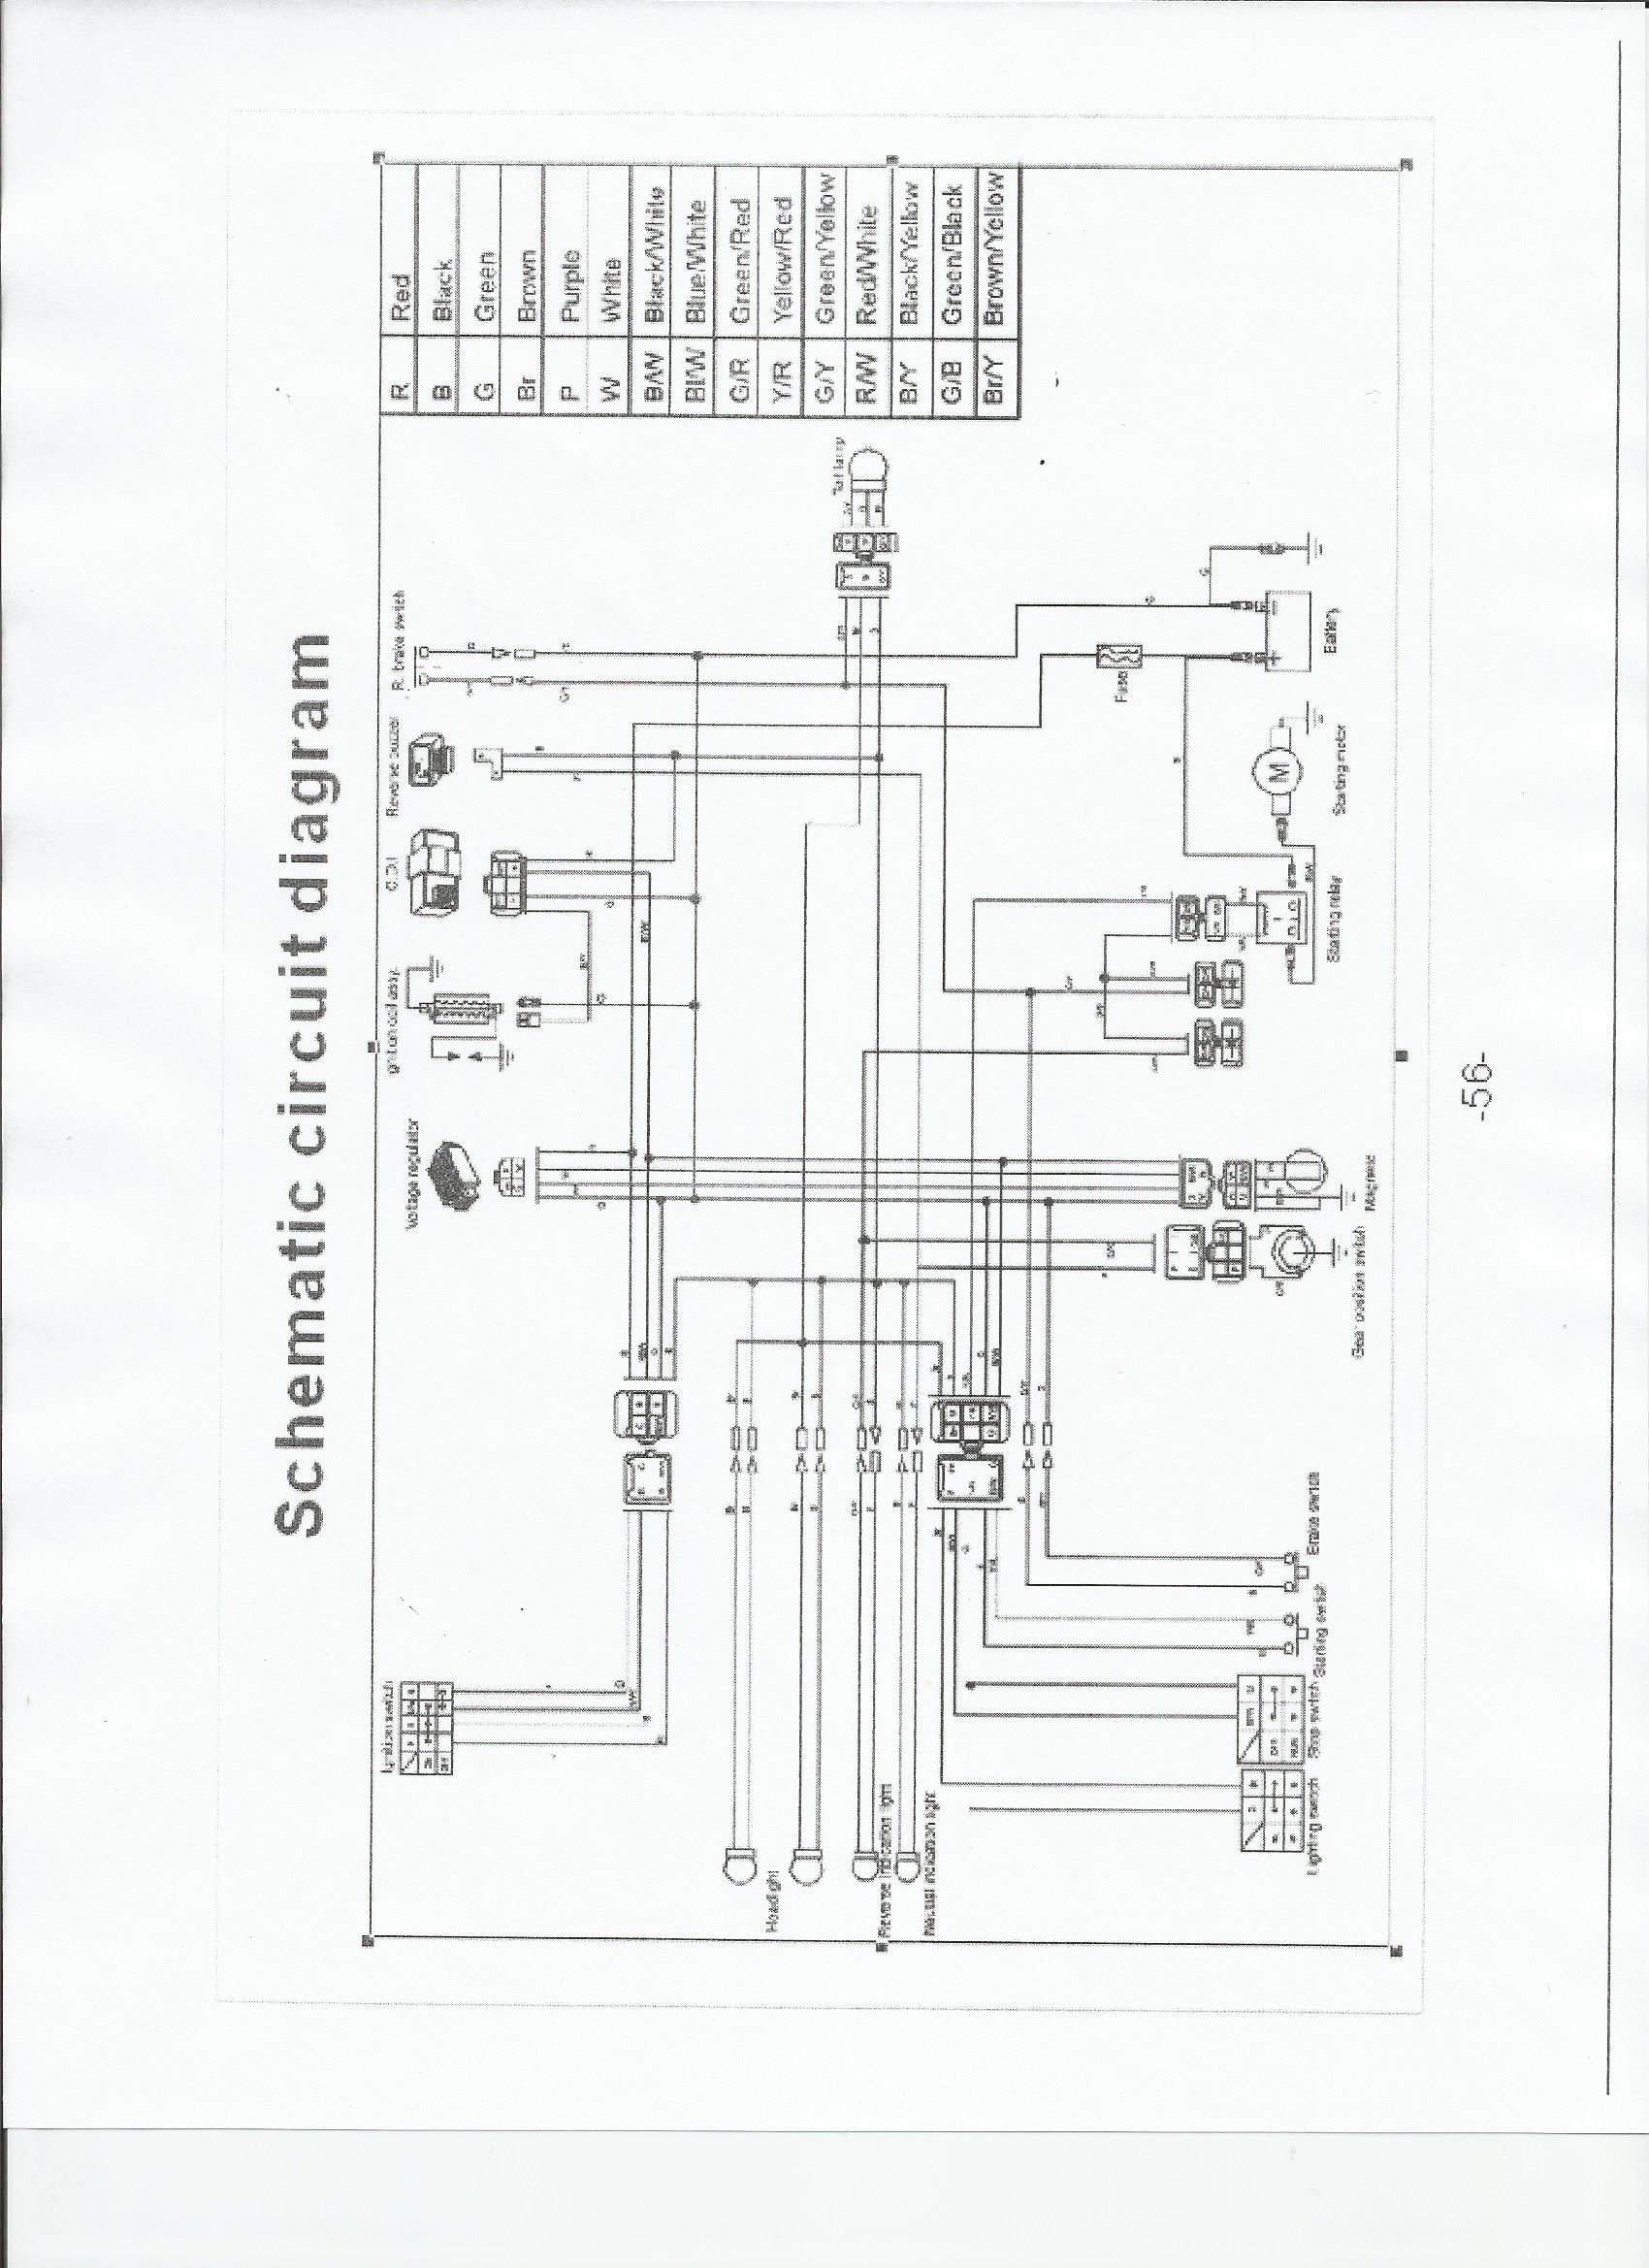 tao tao wiring schematic taotao mini and youth atv wiring schematic familygokarts support  at bakdesigns.co